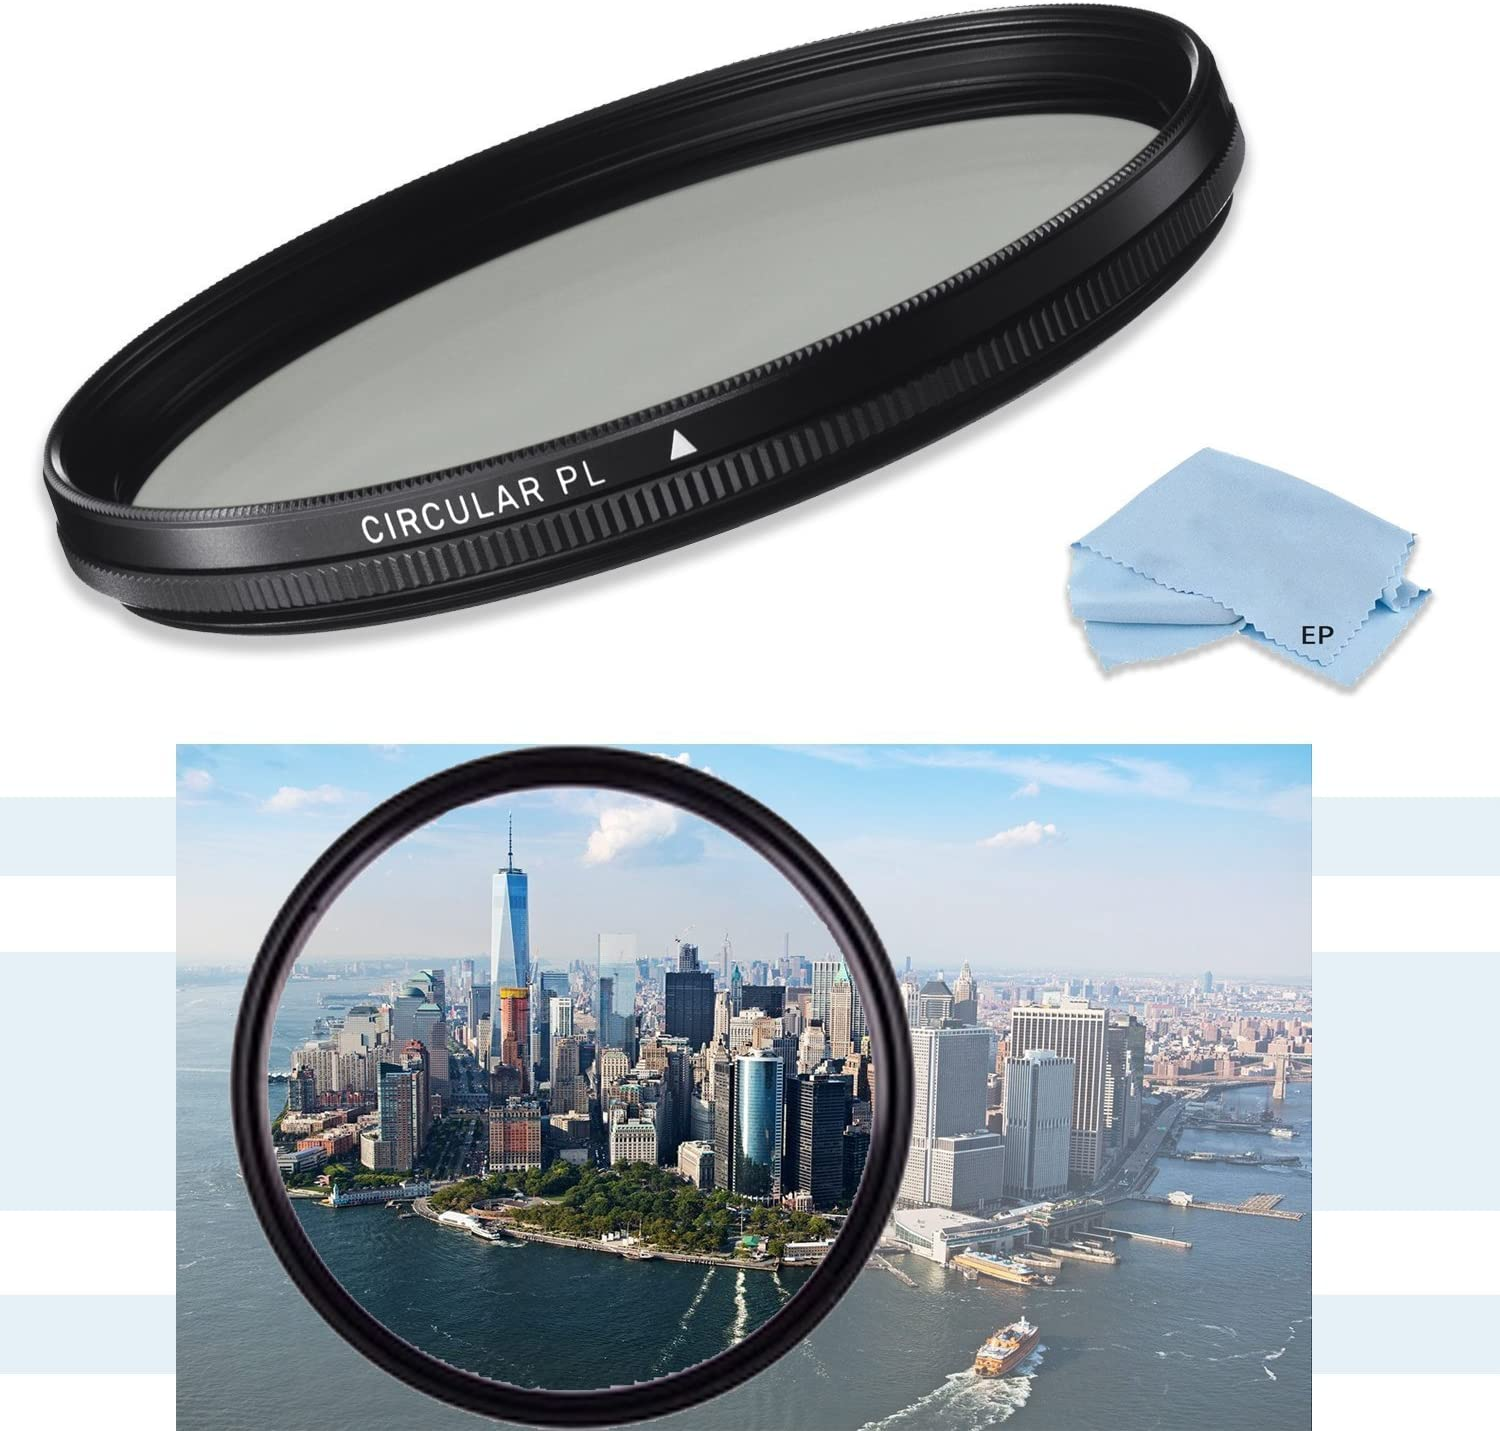 Canon EF 135mm f//2L USM Lens Canon EF 200mm f//2.8L II USM Telephoto Lens /& Canon EF 35mm f//1.4L USM Wide Angle Lens HD 72mm CPL Circular Polarizing Filter for Canon EF 50mm f//1.2 L USM Lens